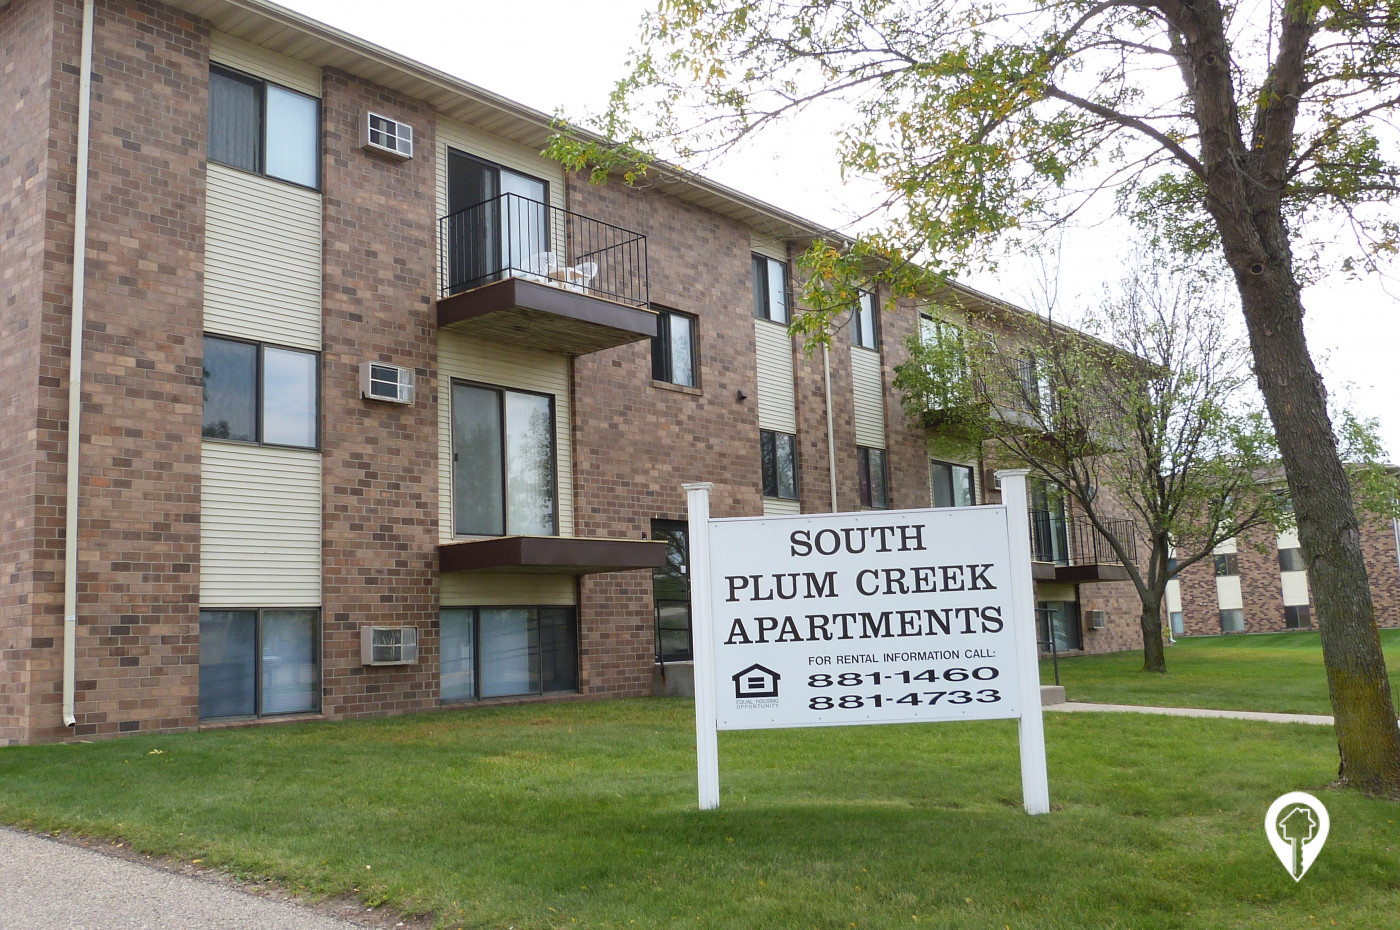 South Plum Creek Apartments